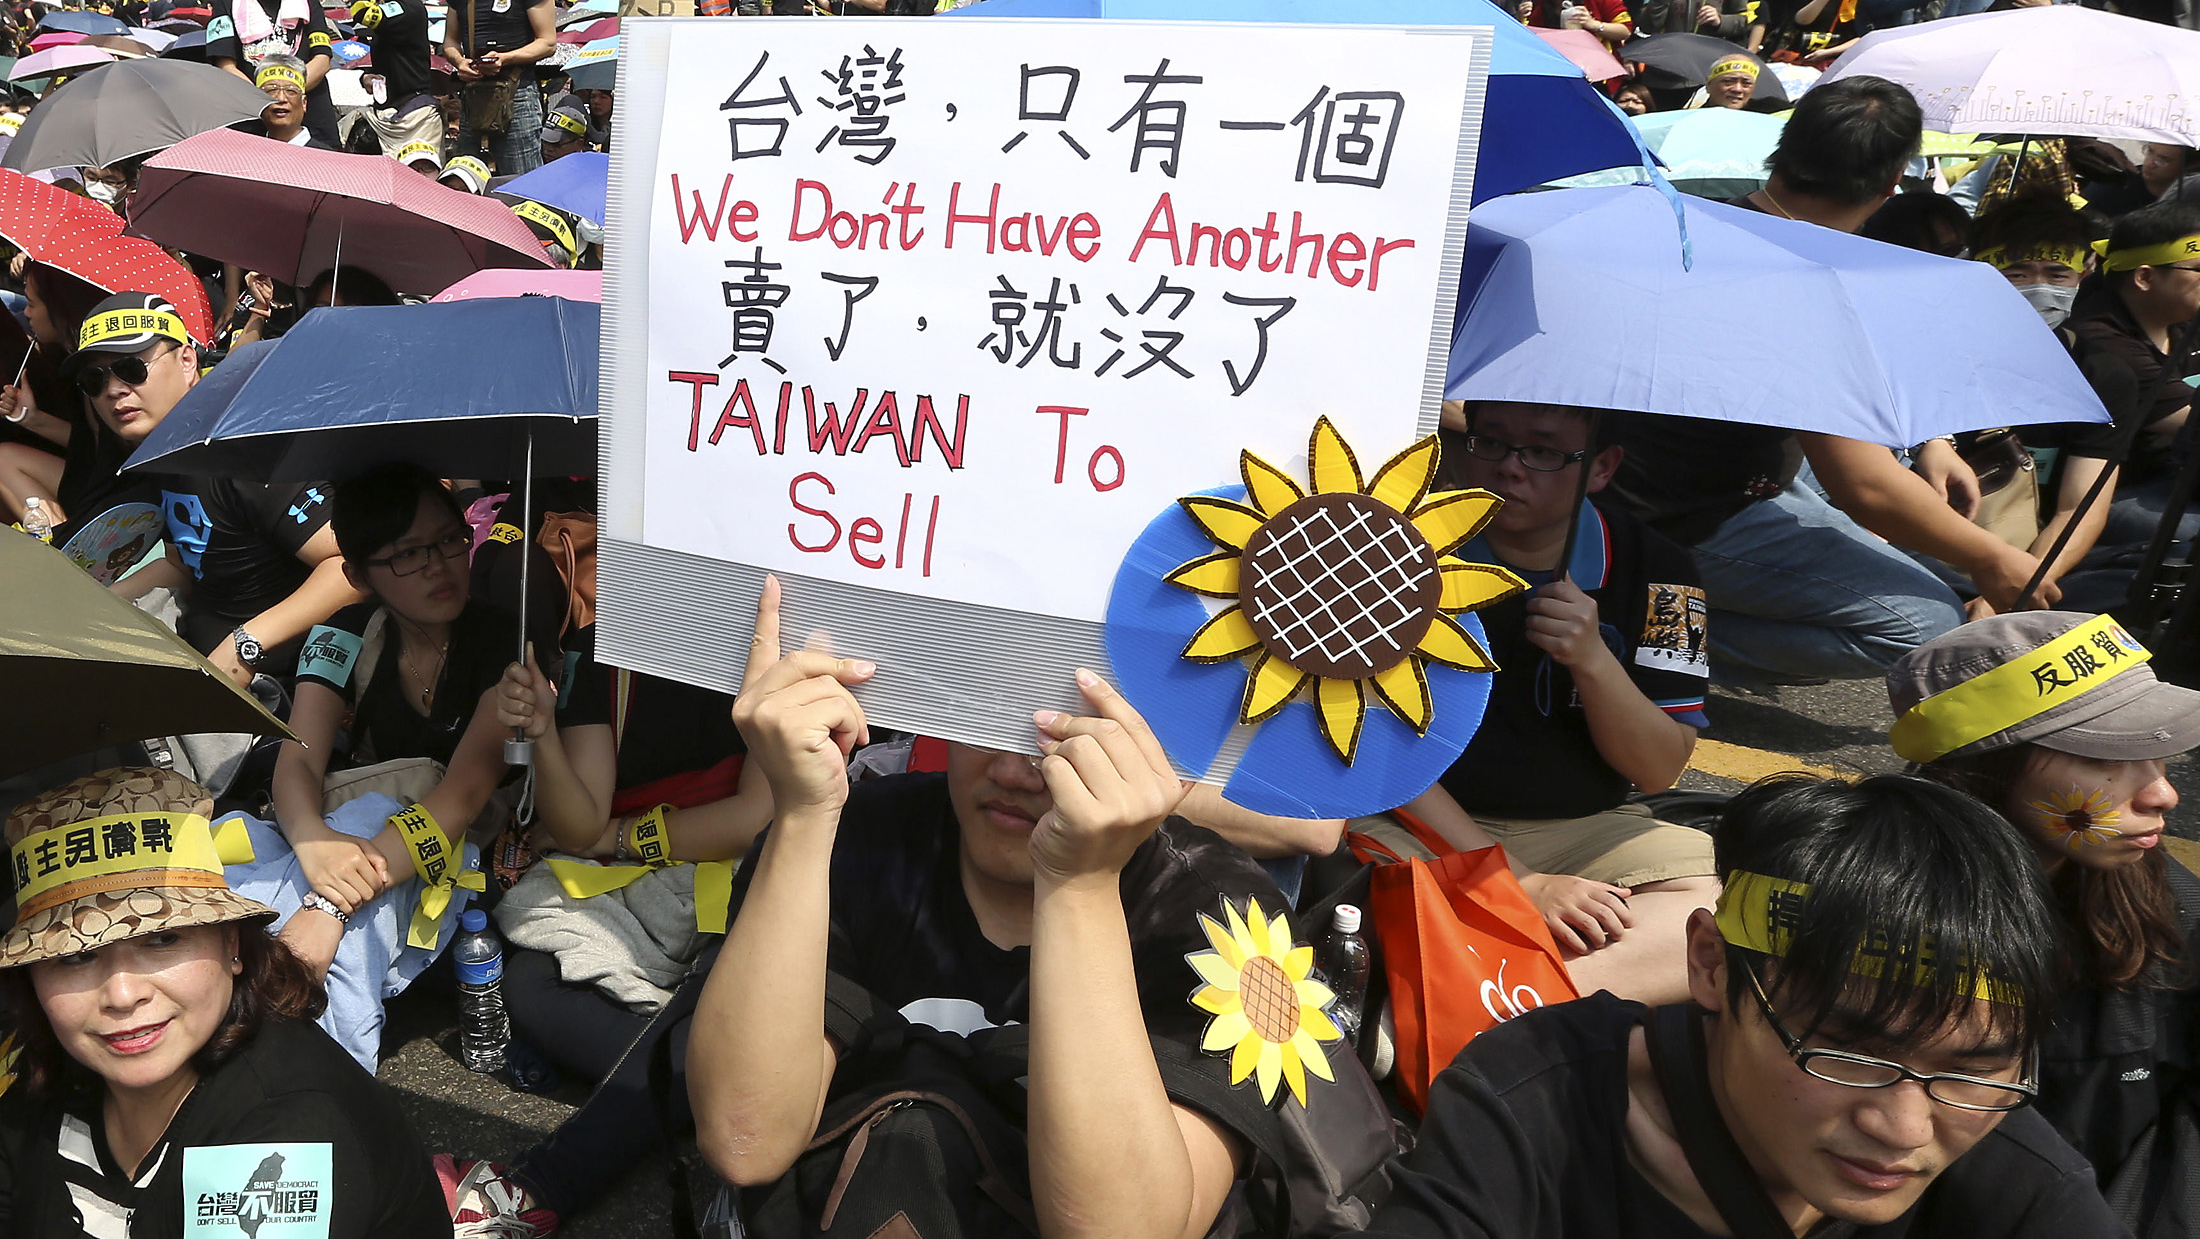 A demonstrator holds placard in front of the Presidential Office in Taipei March 30, 2014. Thousands of demonstrators marched the streets on Sunday to protest against the controversial trade pact with mainland China. REUTERS/Patrick Lin